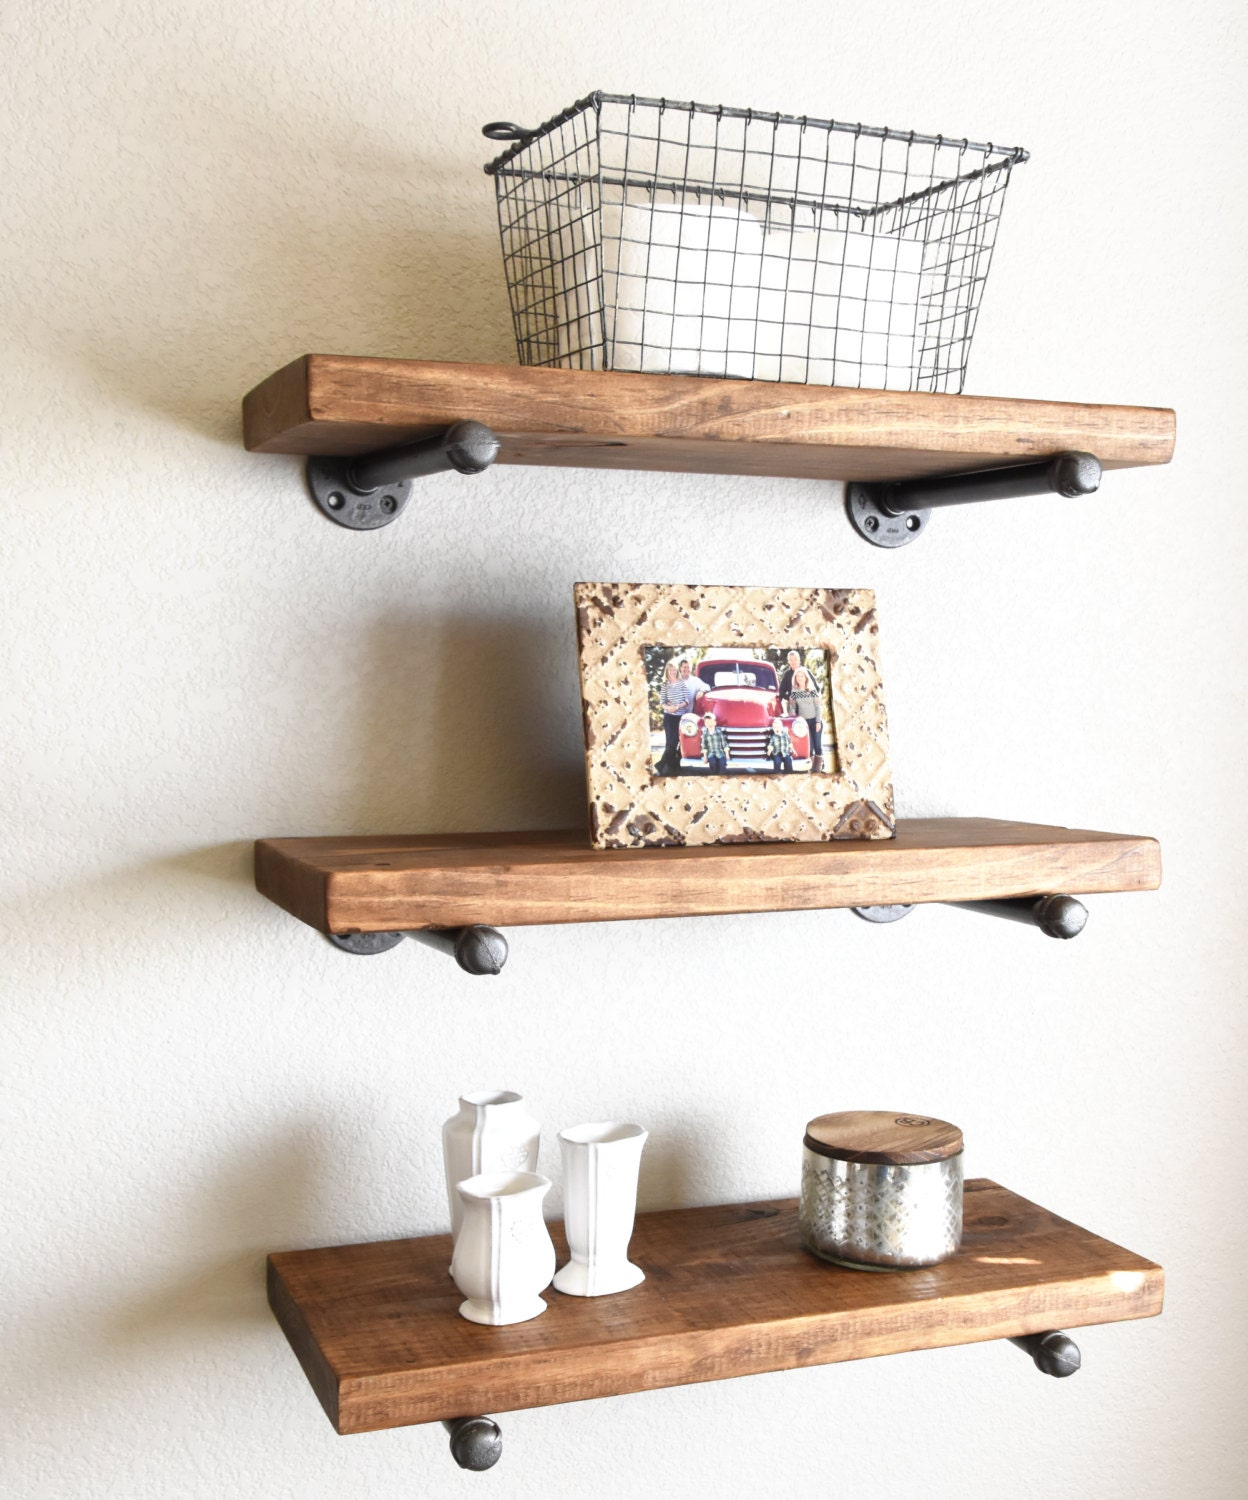 Pipe Shelves Kitchen: 3 Shelf Combo 10 Deep Industrial Floating Shelves